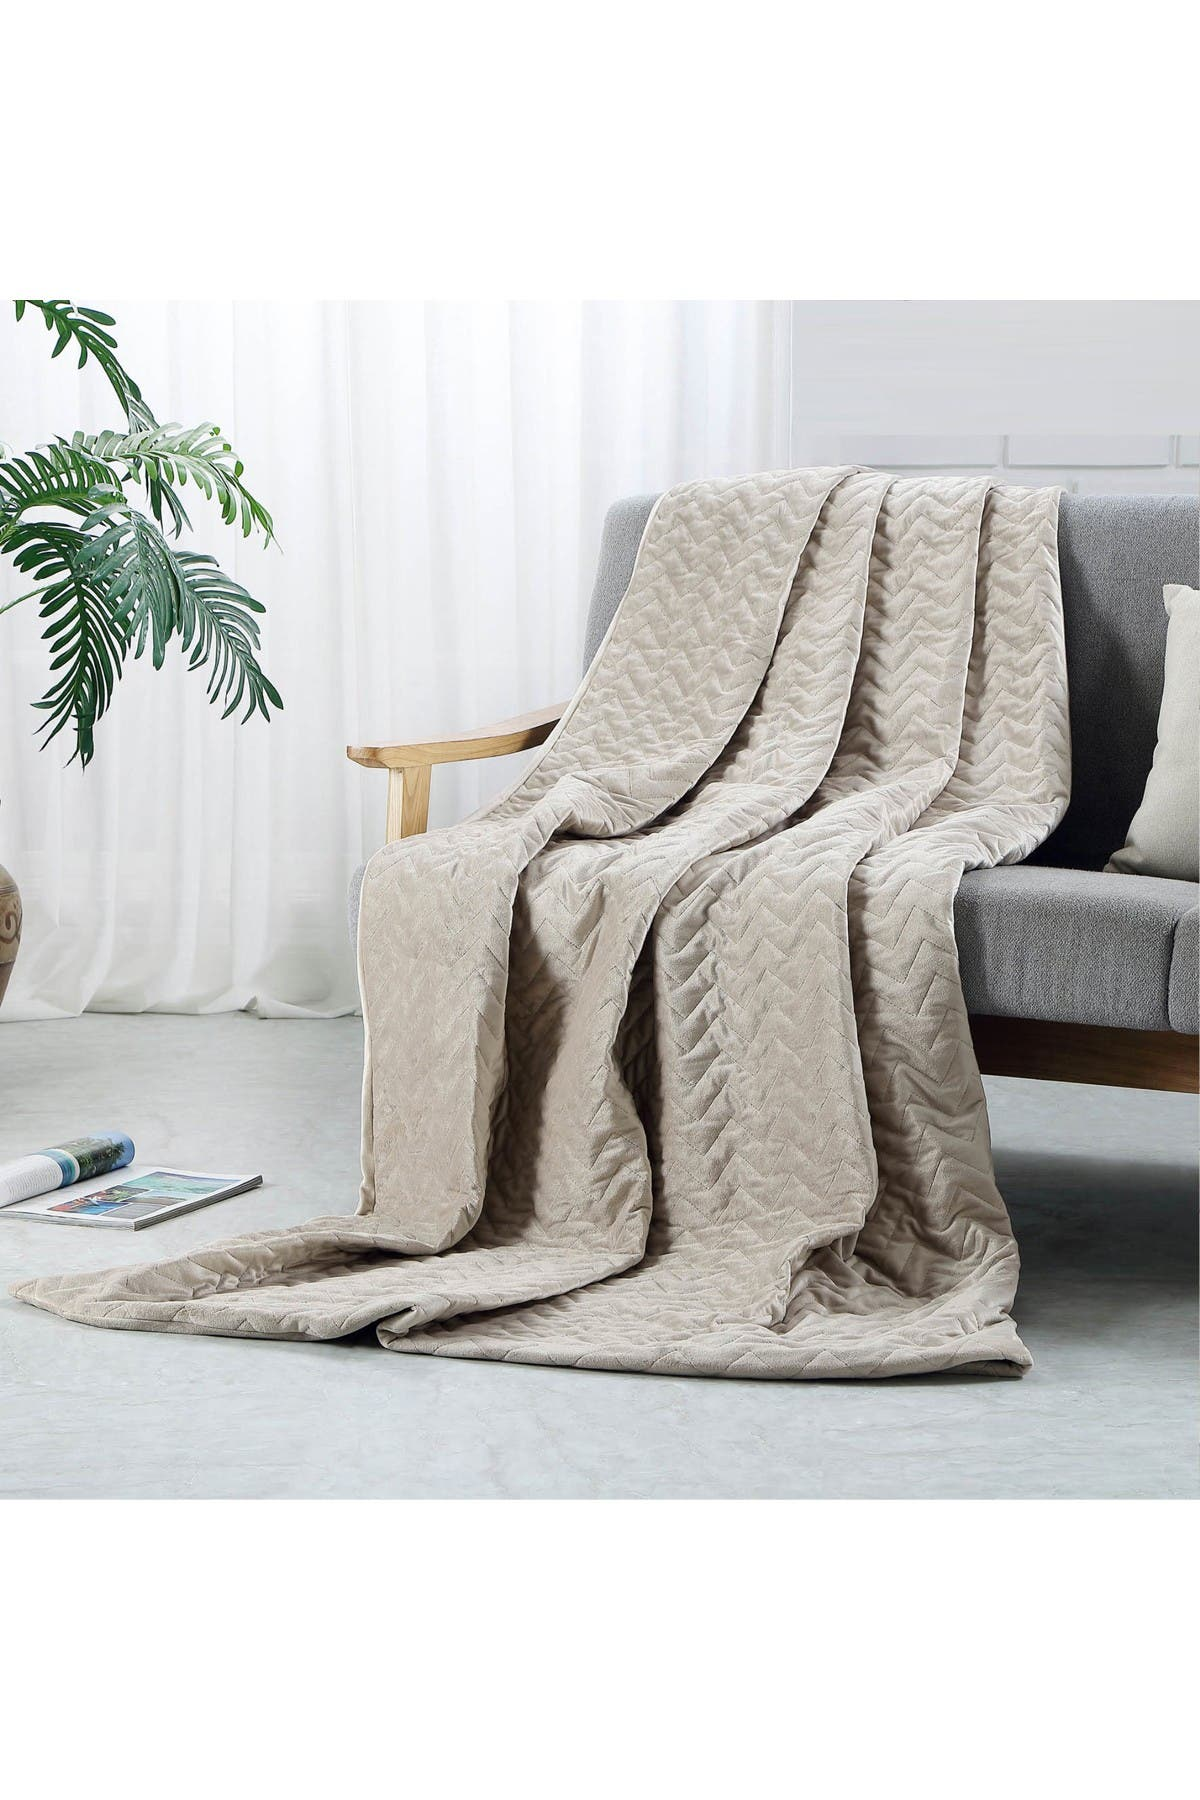 "Image of Inspired Home Cozy Tyme Eshe Weighted Blanket 25lbs 72"" x 80"" - Taupe"